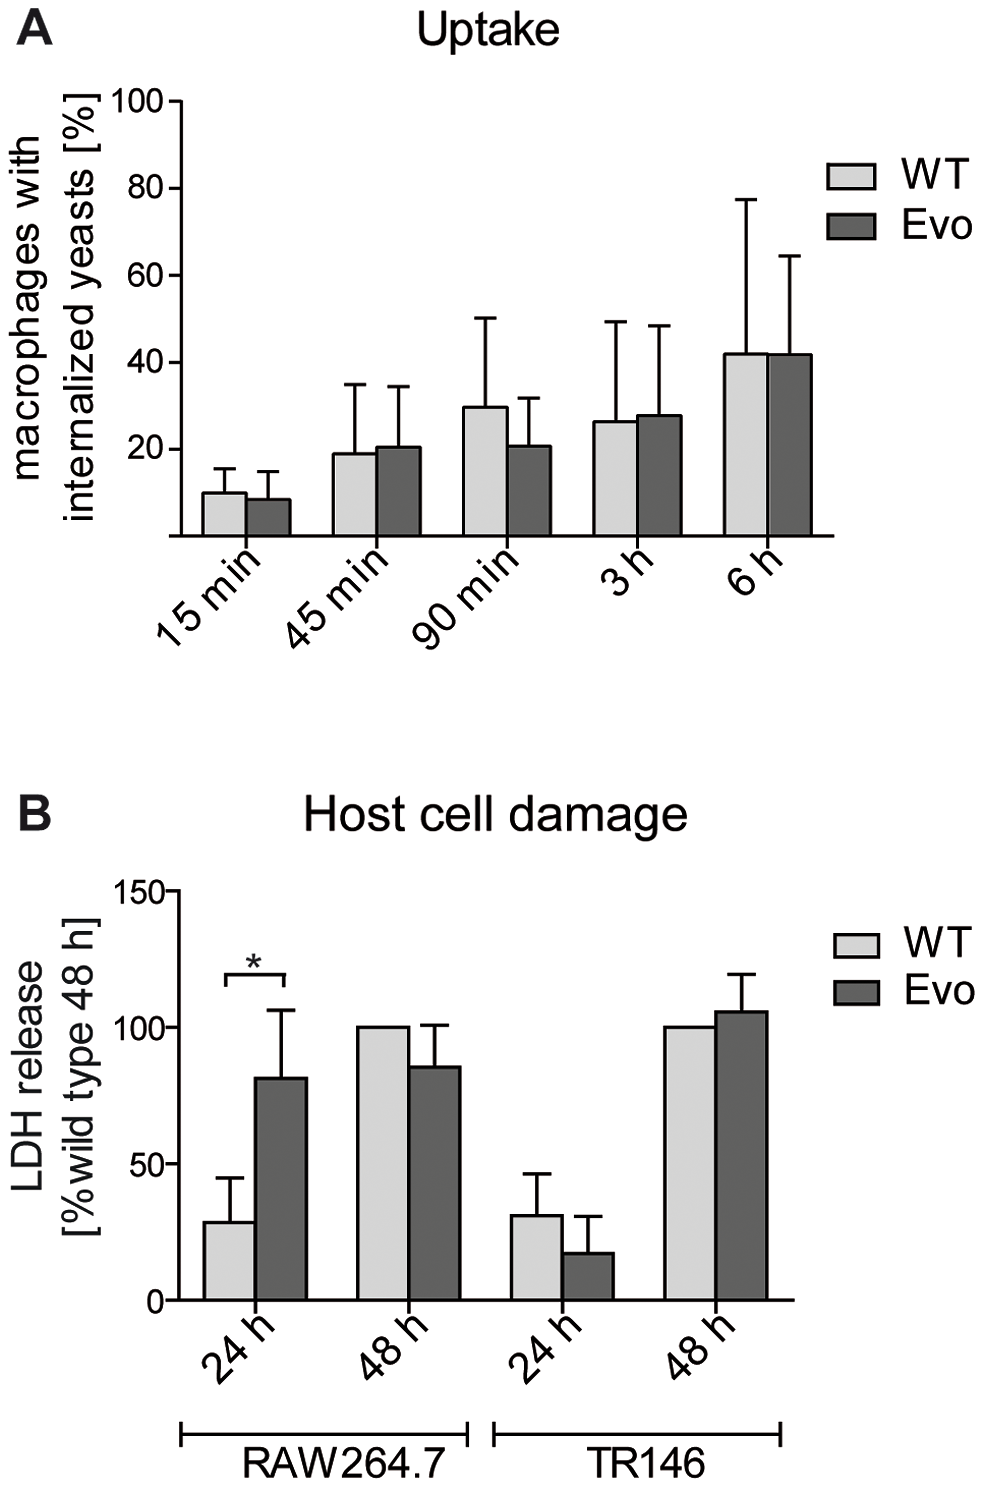 Microevolutionary adaptation results in altered host-pathogen interactions.